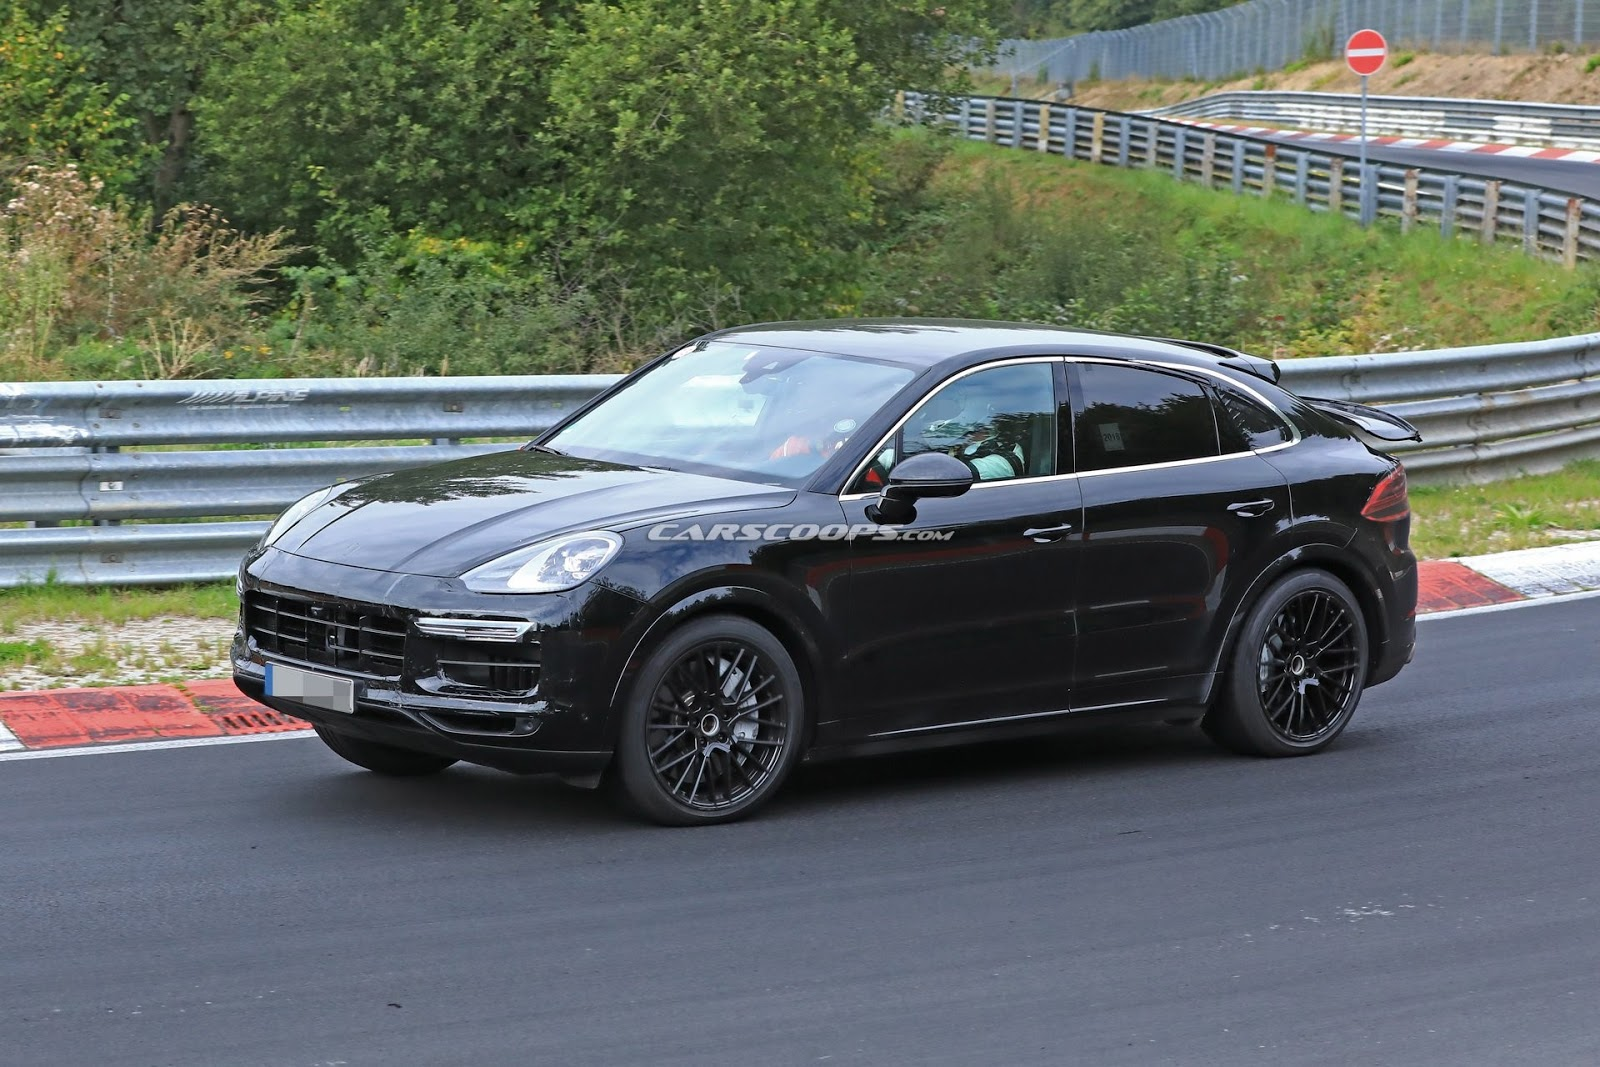 2020 Porsche Cayenne Coupe GT5 Gets Lambo Urus Engine >> 2020 Porsche Cayenne Coupe Spy Shot Ms Blog